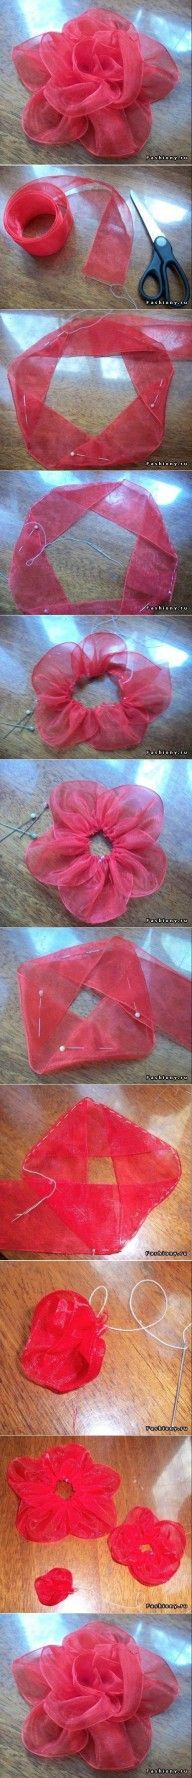 DIY Ribbon Tape Flower DIY Projects